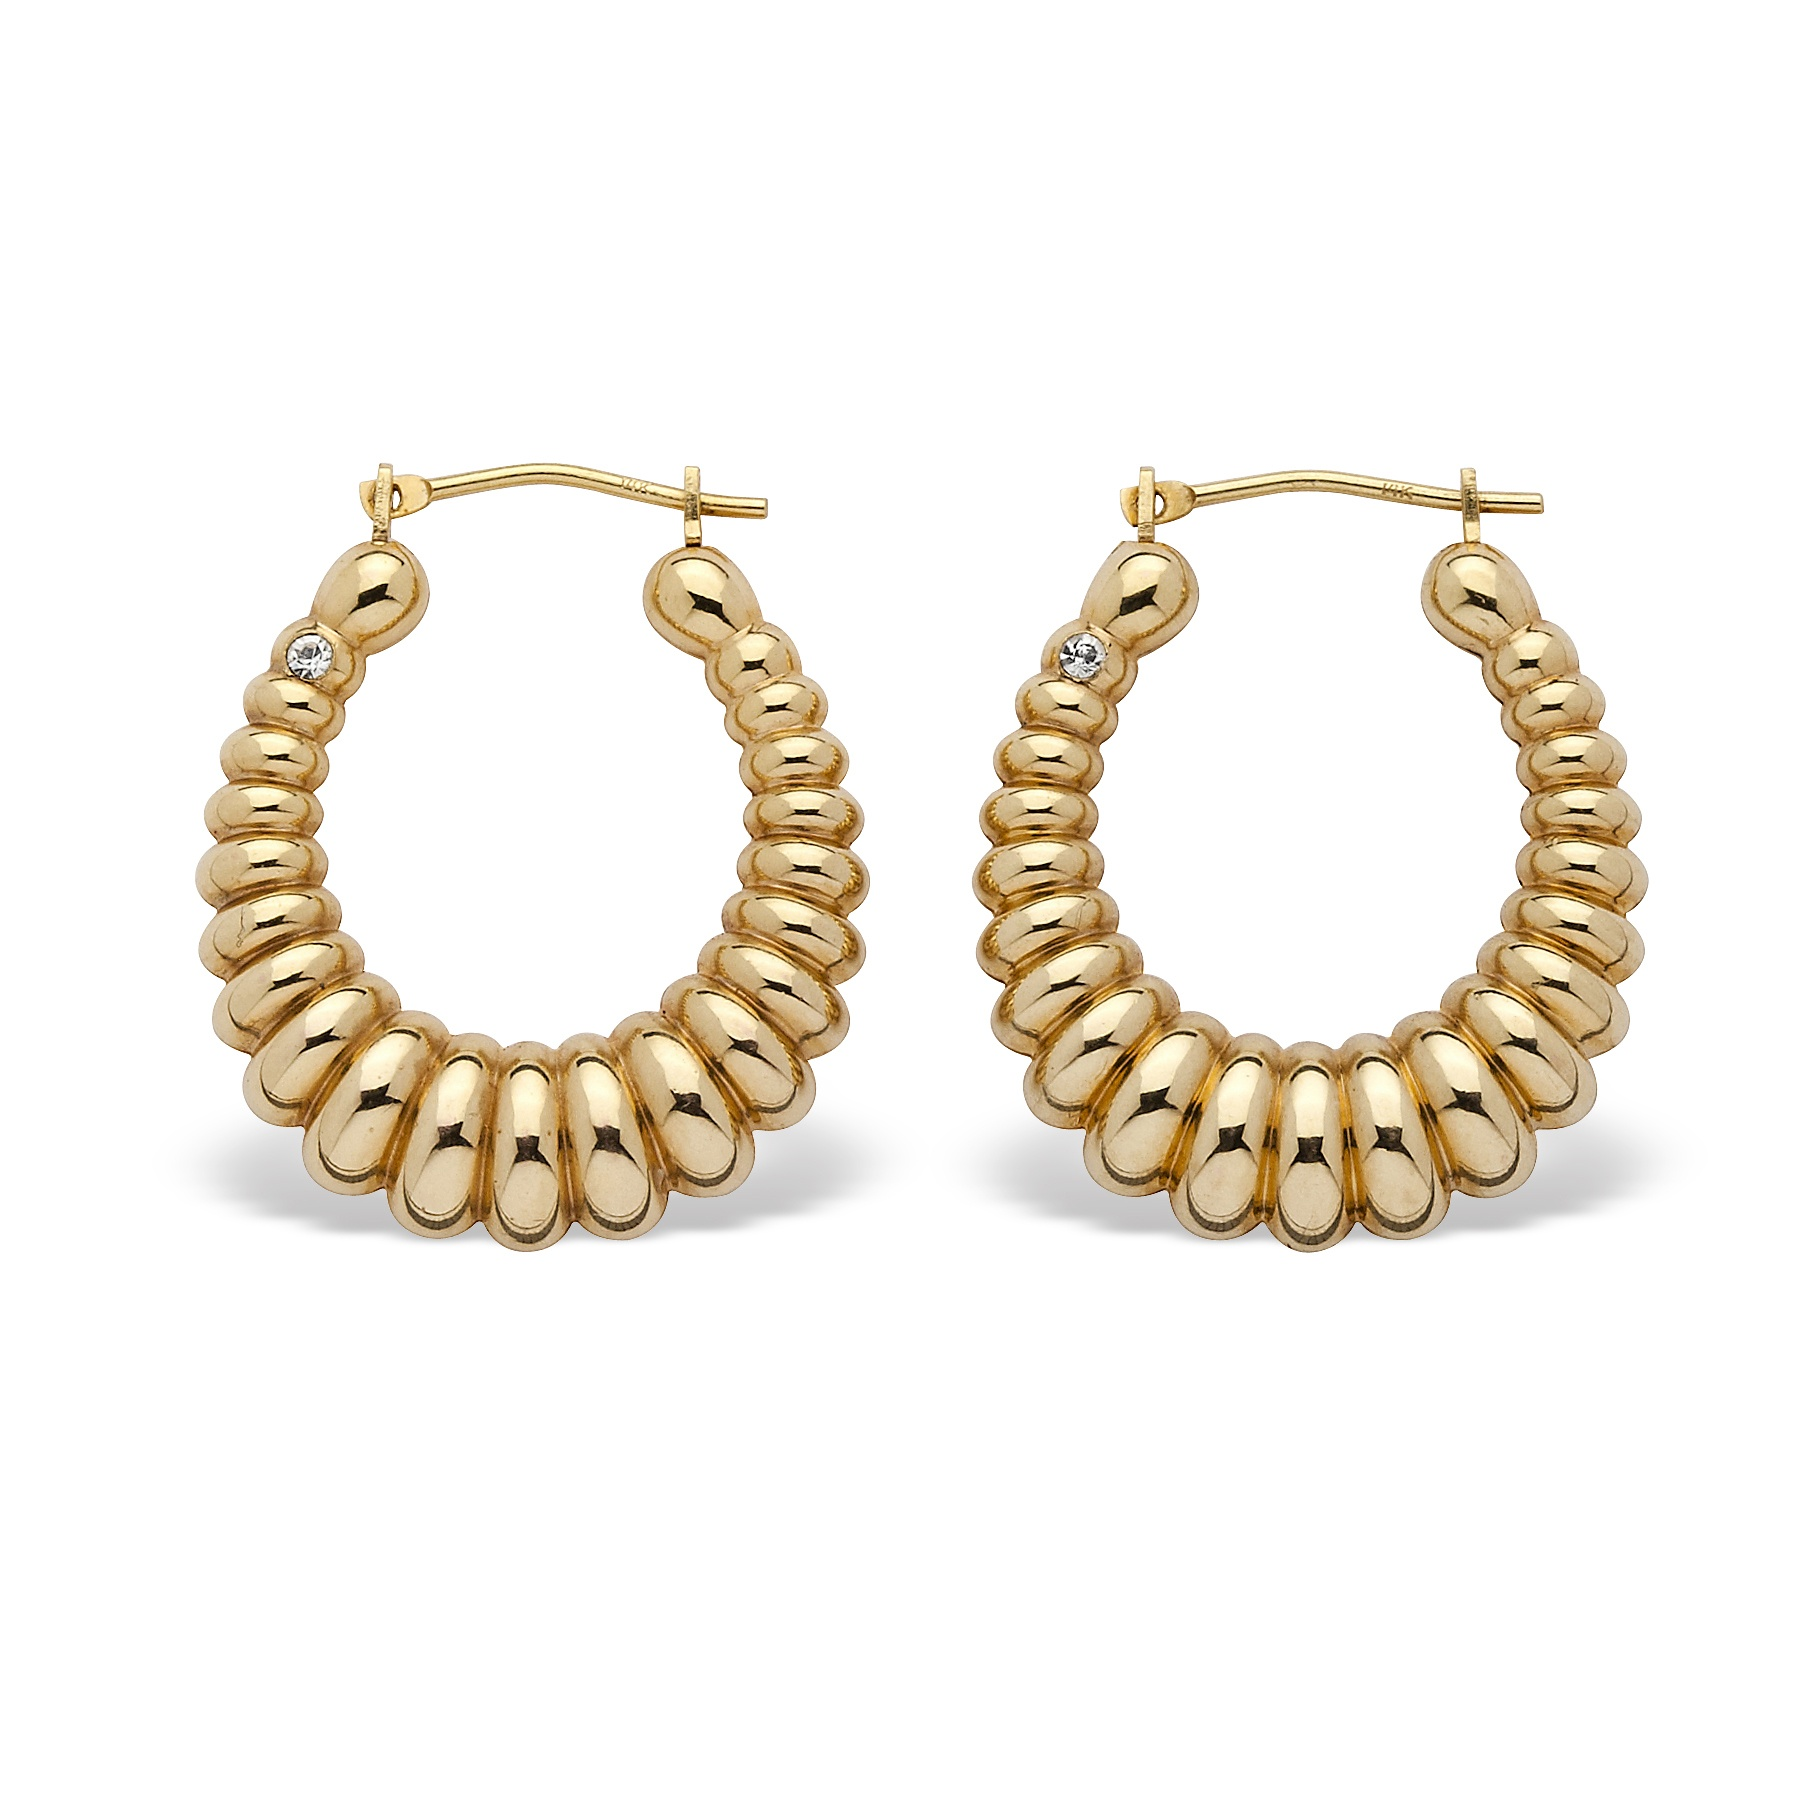 You Can Get Financing When Buying Jewelry 55931_1